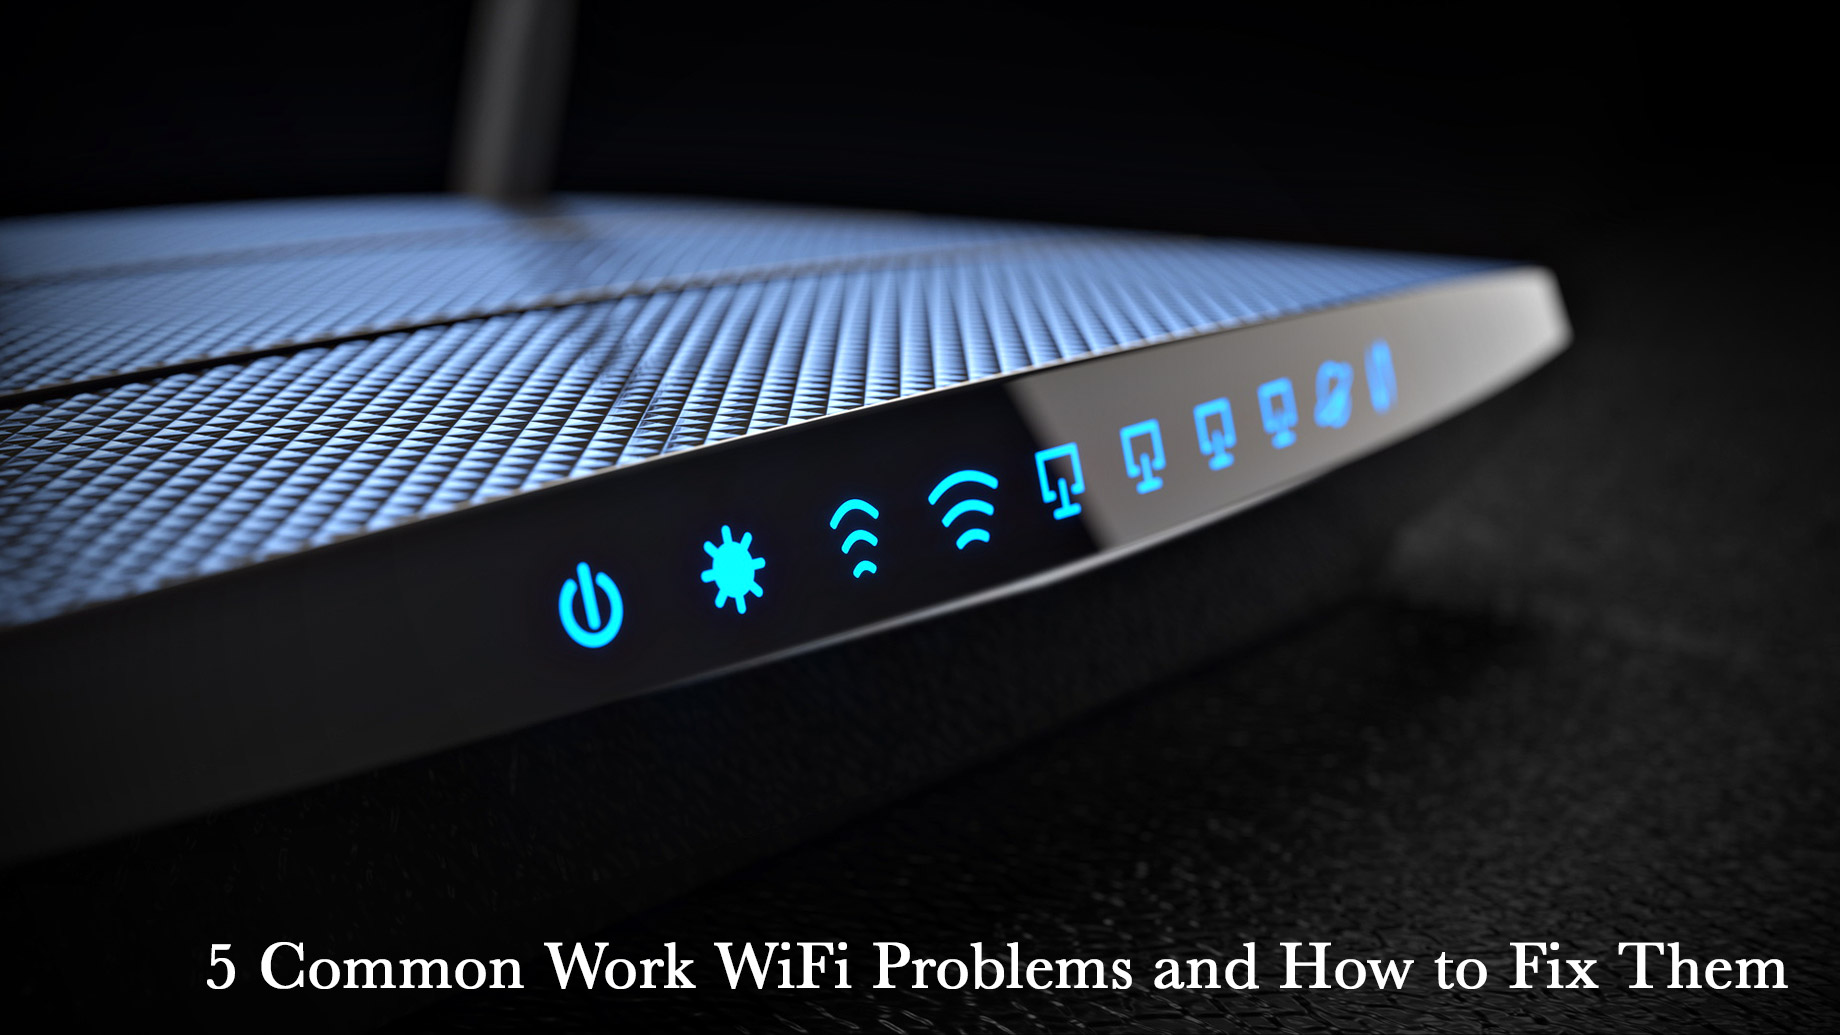 5 Common Work WiFi Problems and How to Fix Them